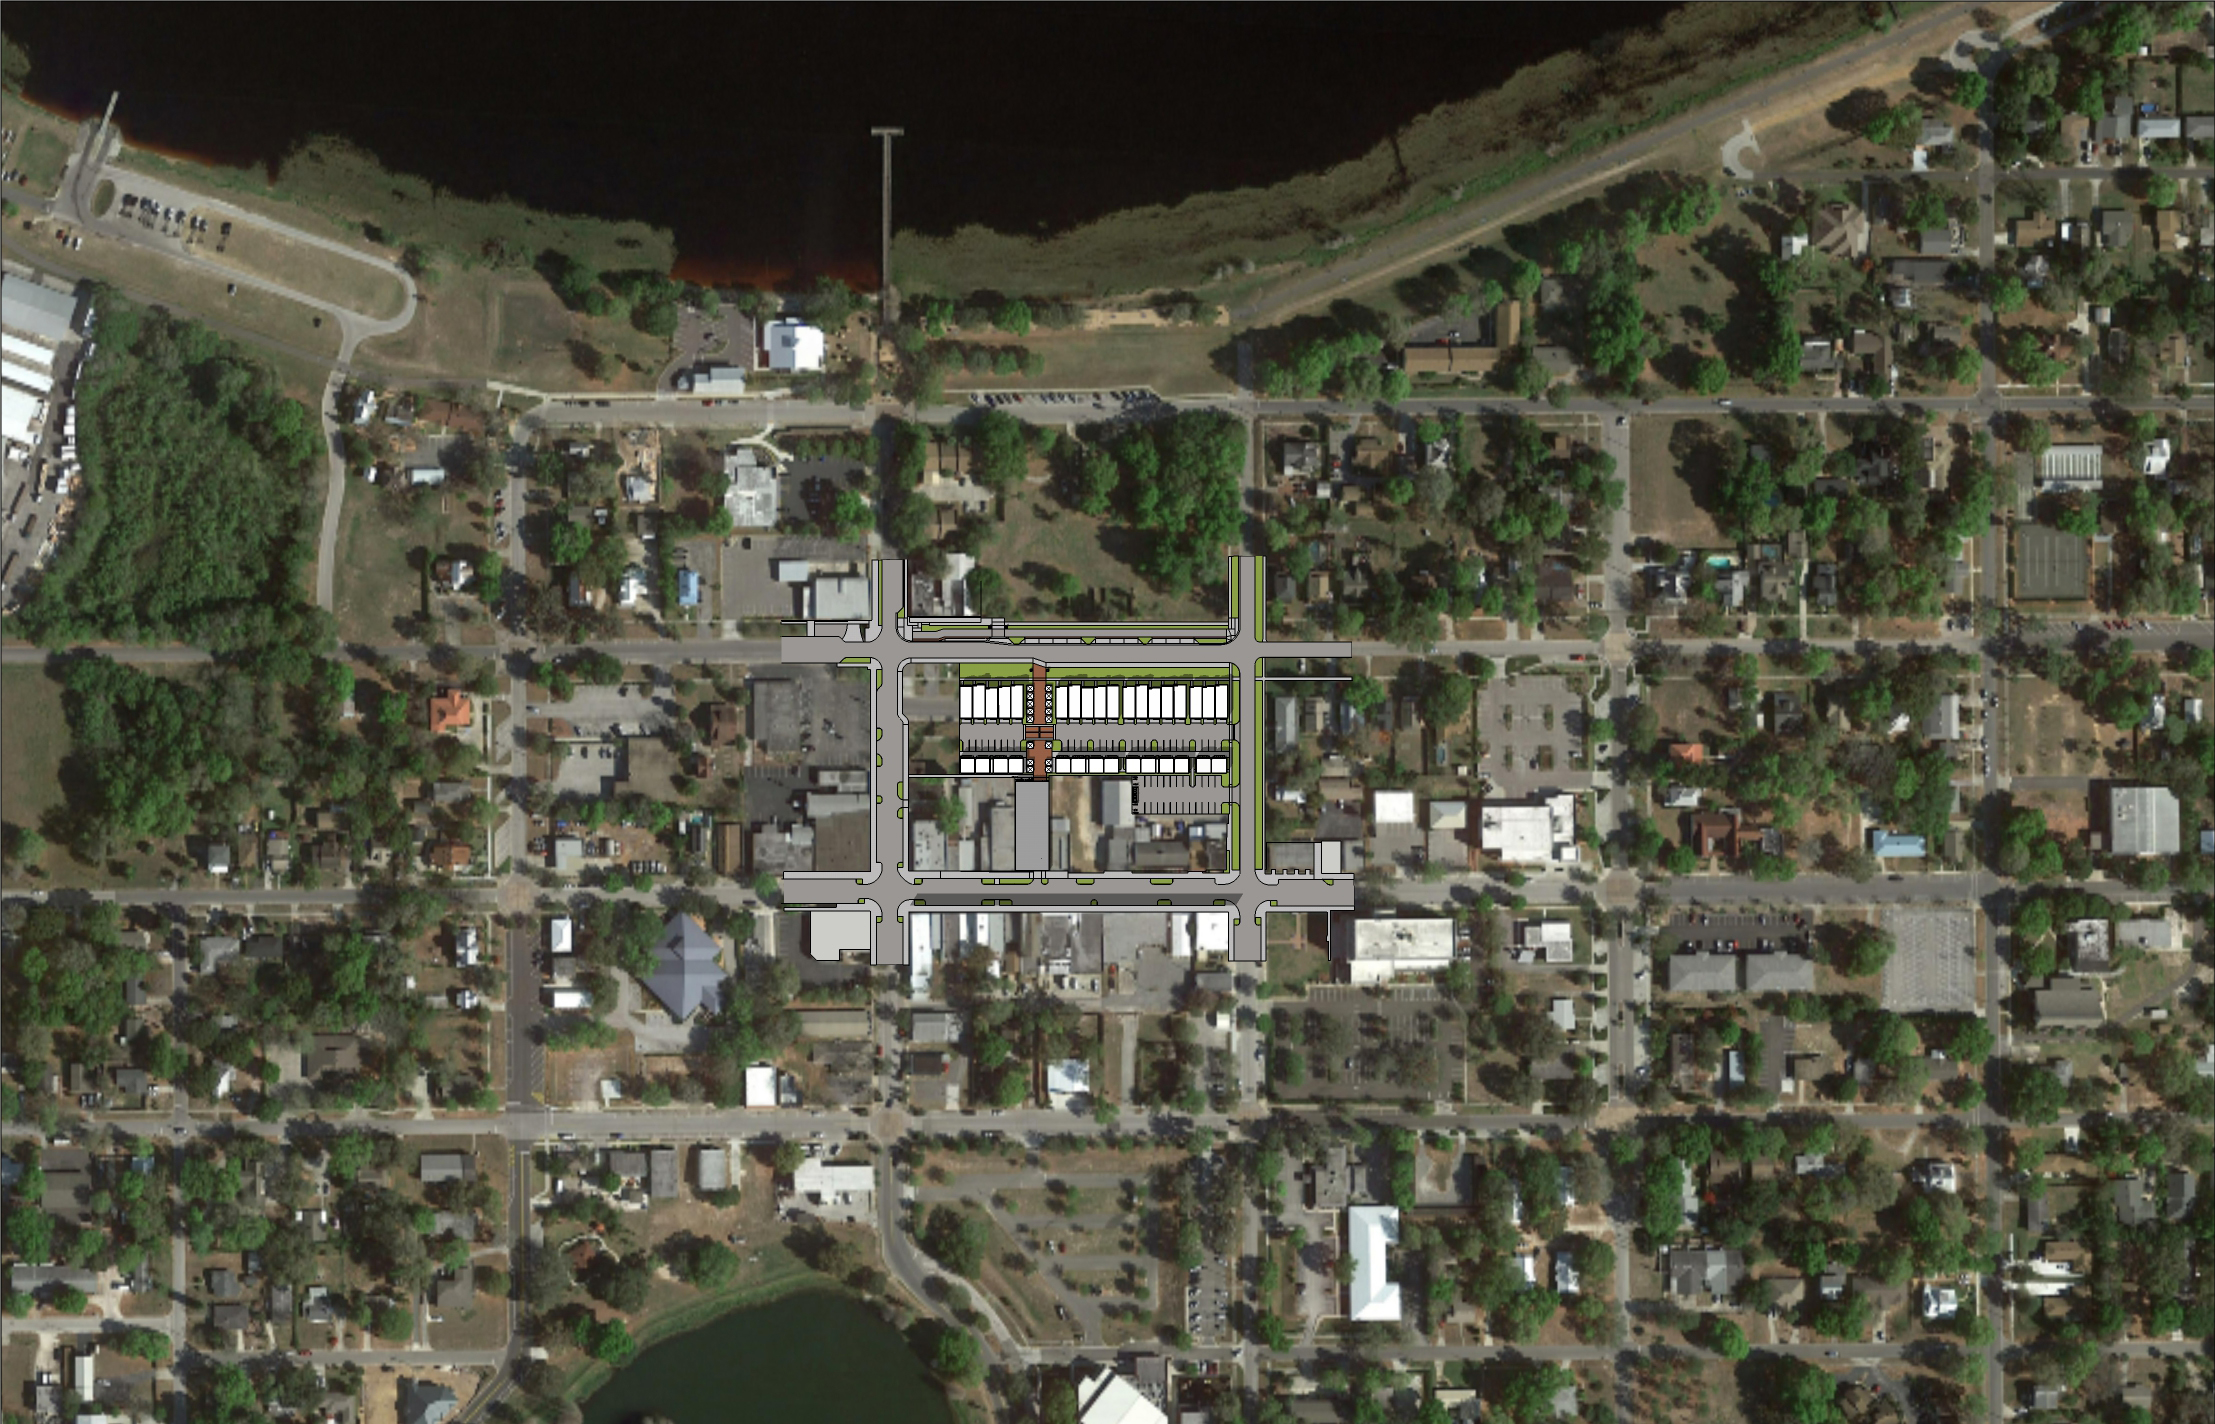 Clermont Arts District Large Site Plan wo existing buildings.jpg